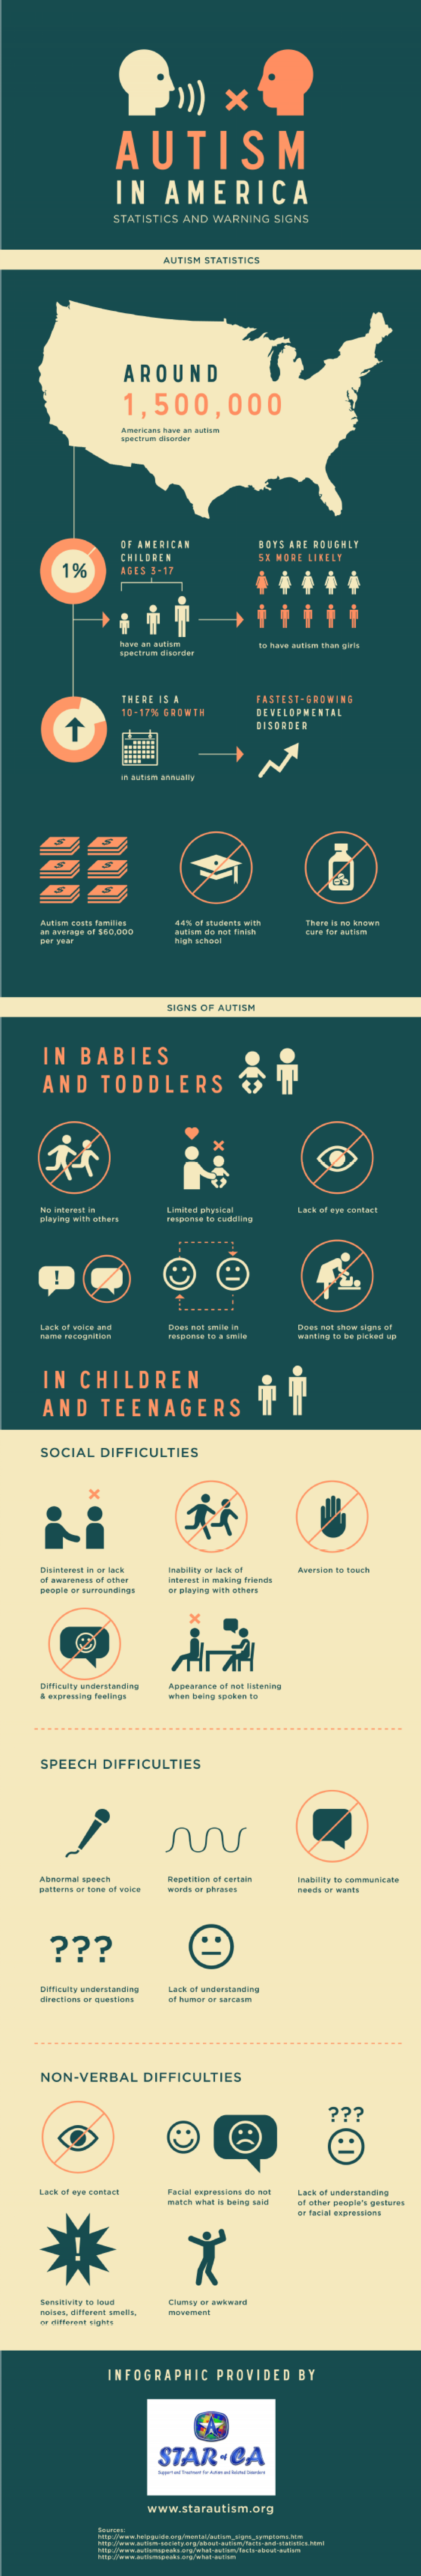 Autism in America: Statistics and Warning Signs  Infographic